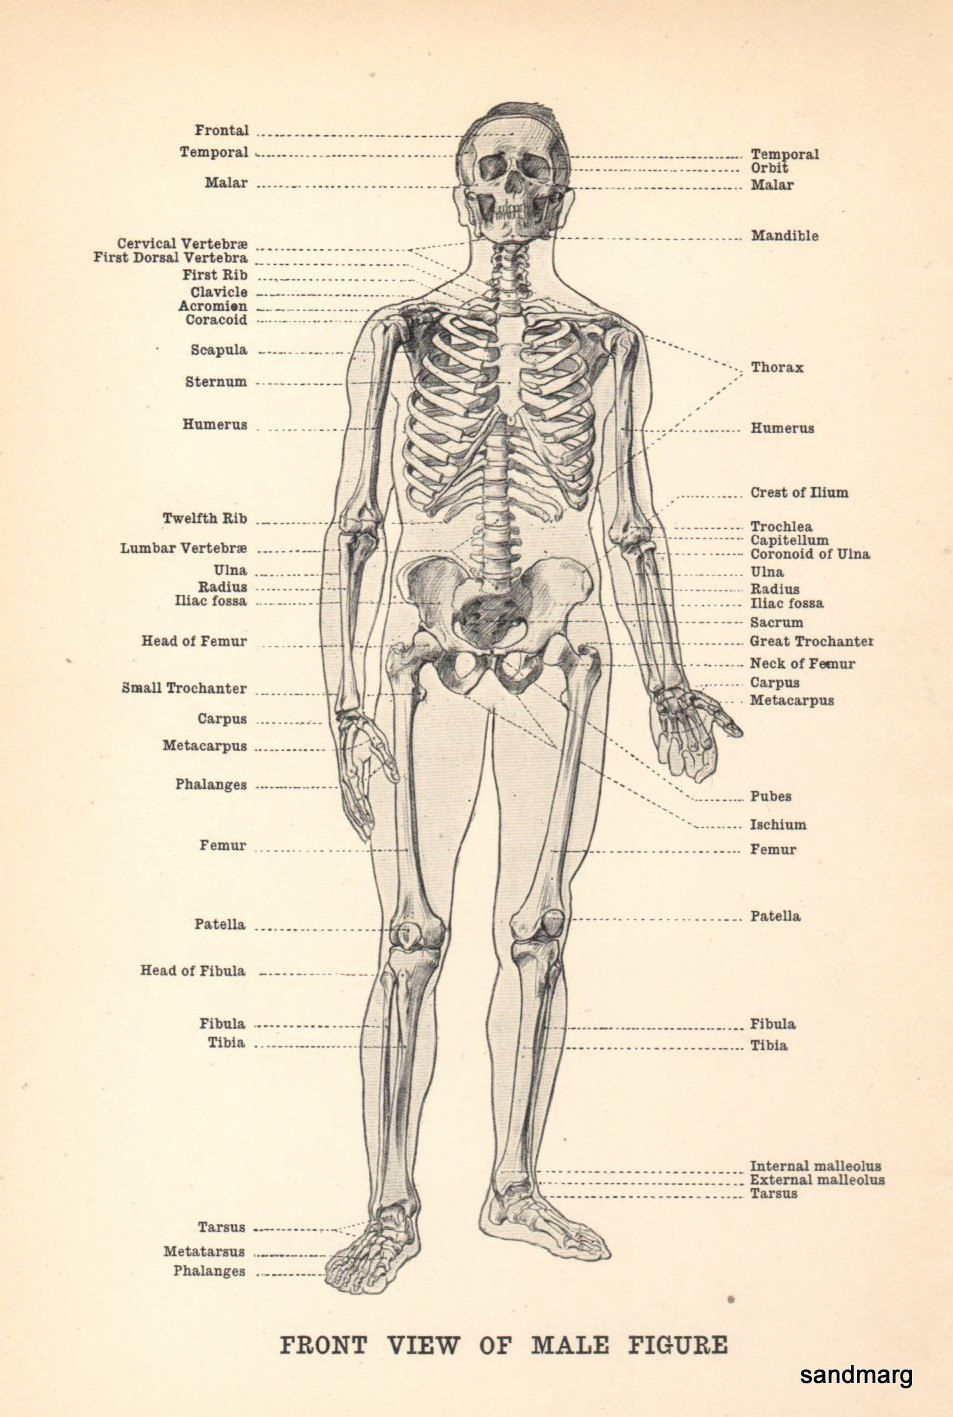 Human Anatomy Front View of Male Figure Skeleton 1911 | Anatomía ...